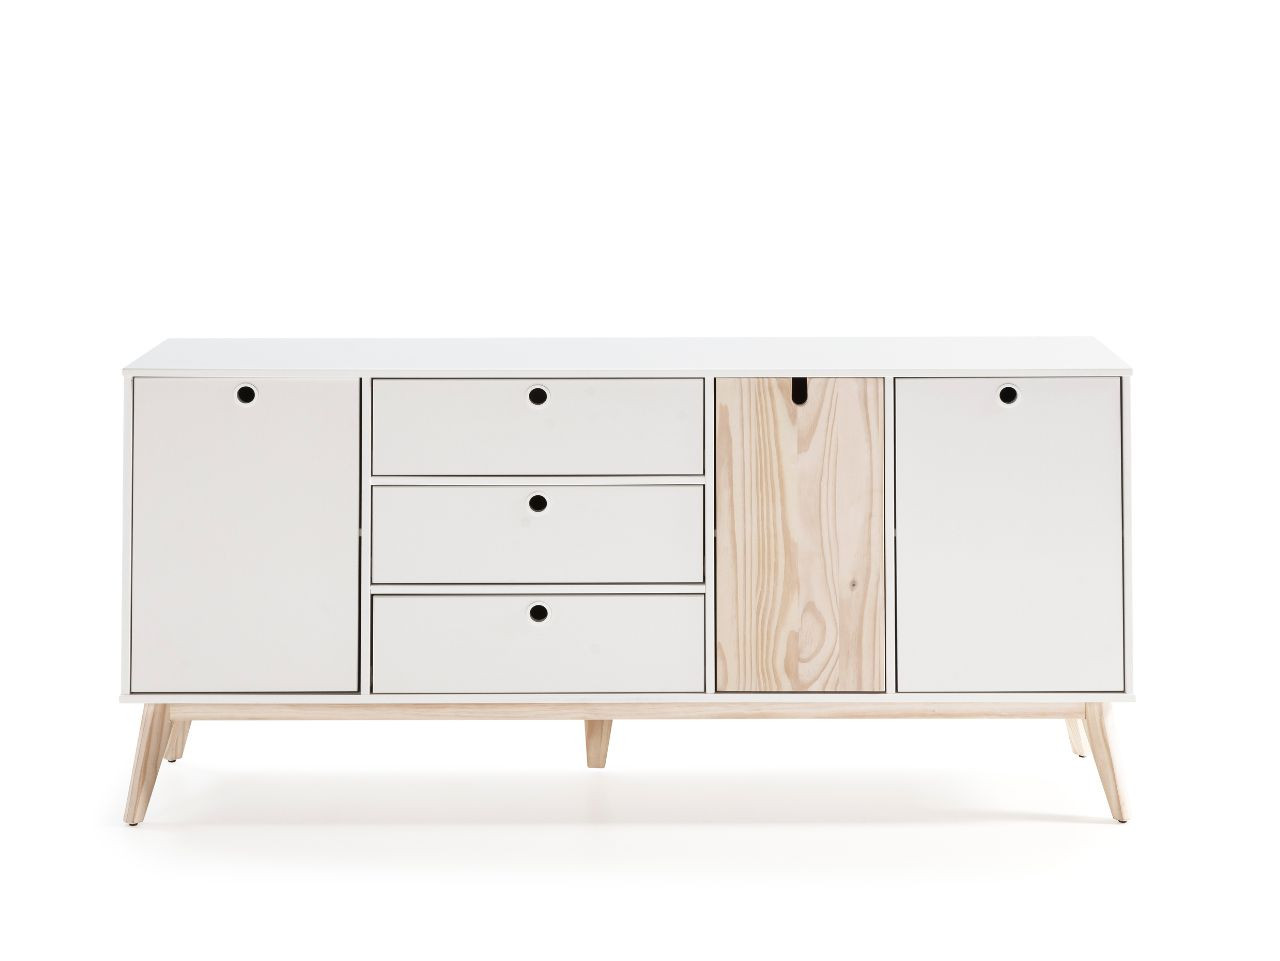 Venta sofas grandes ofertas madrid for Ofertas camas madrid